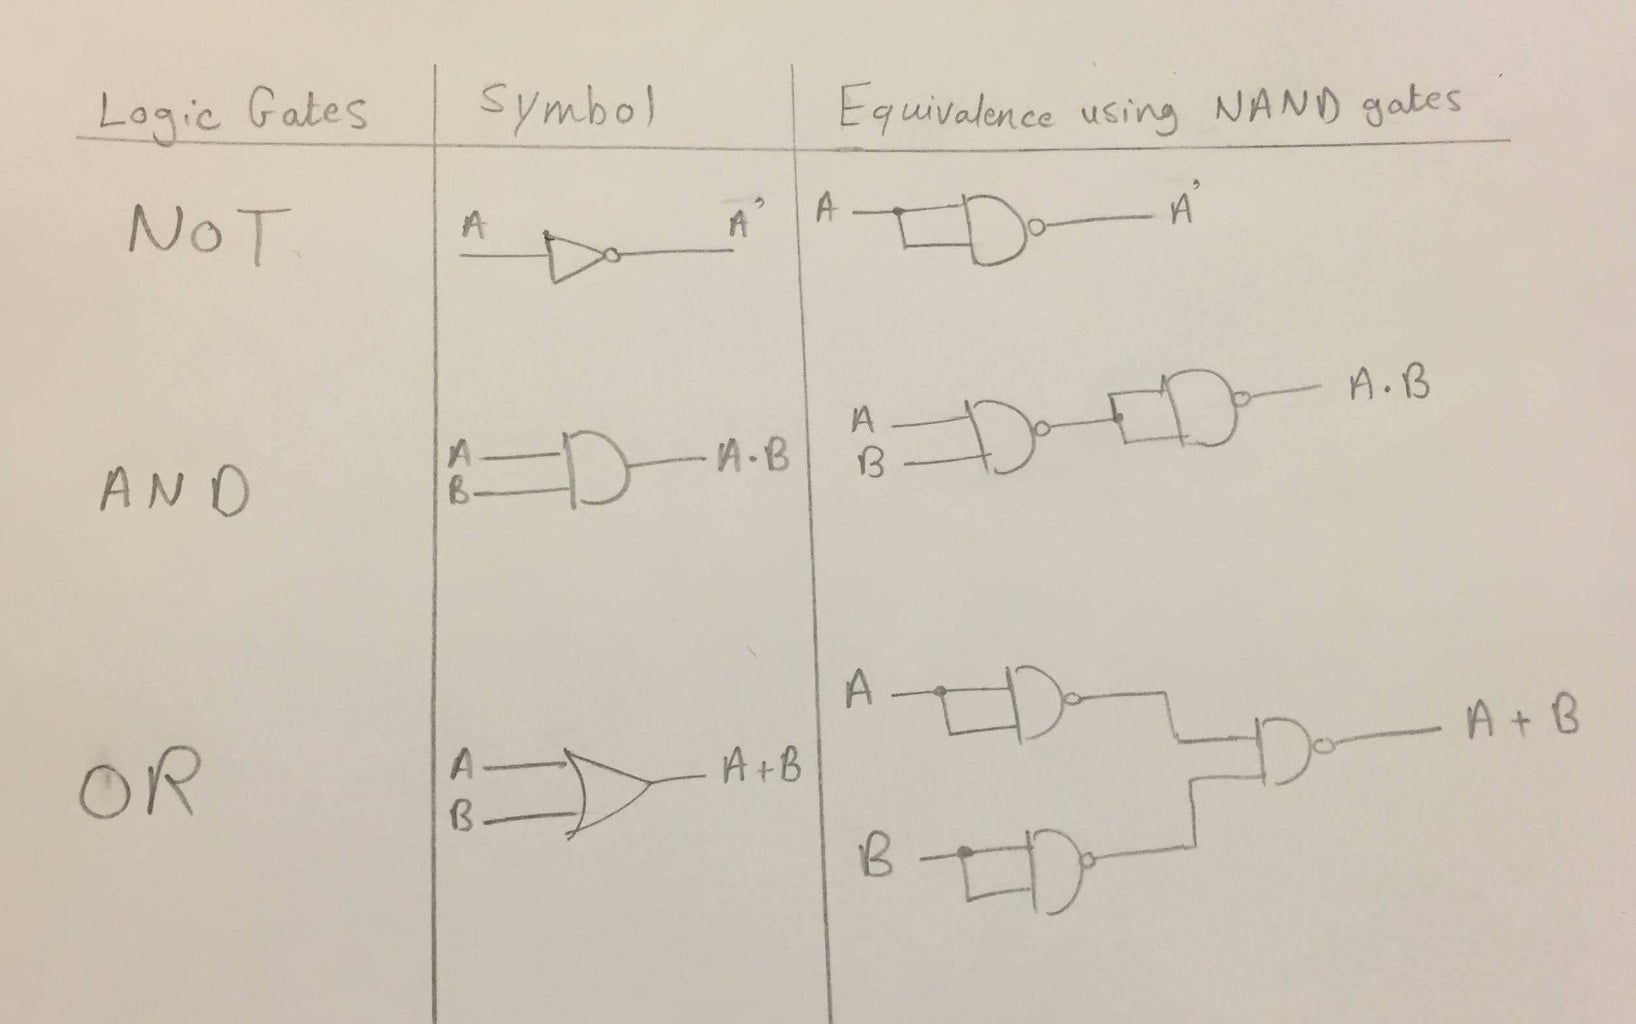 NOT, AND, OR Gates Using NAND Gates